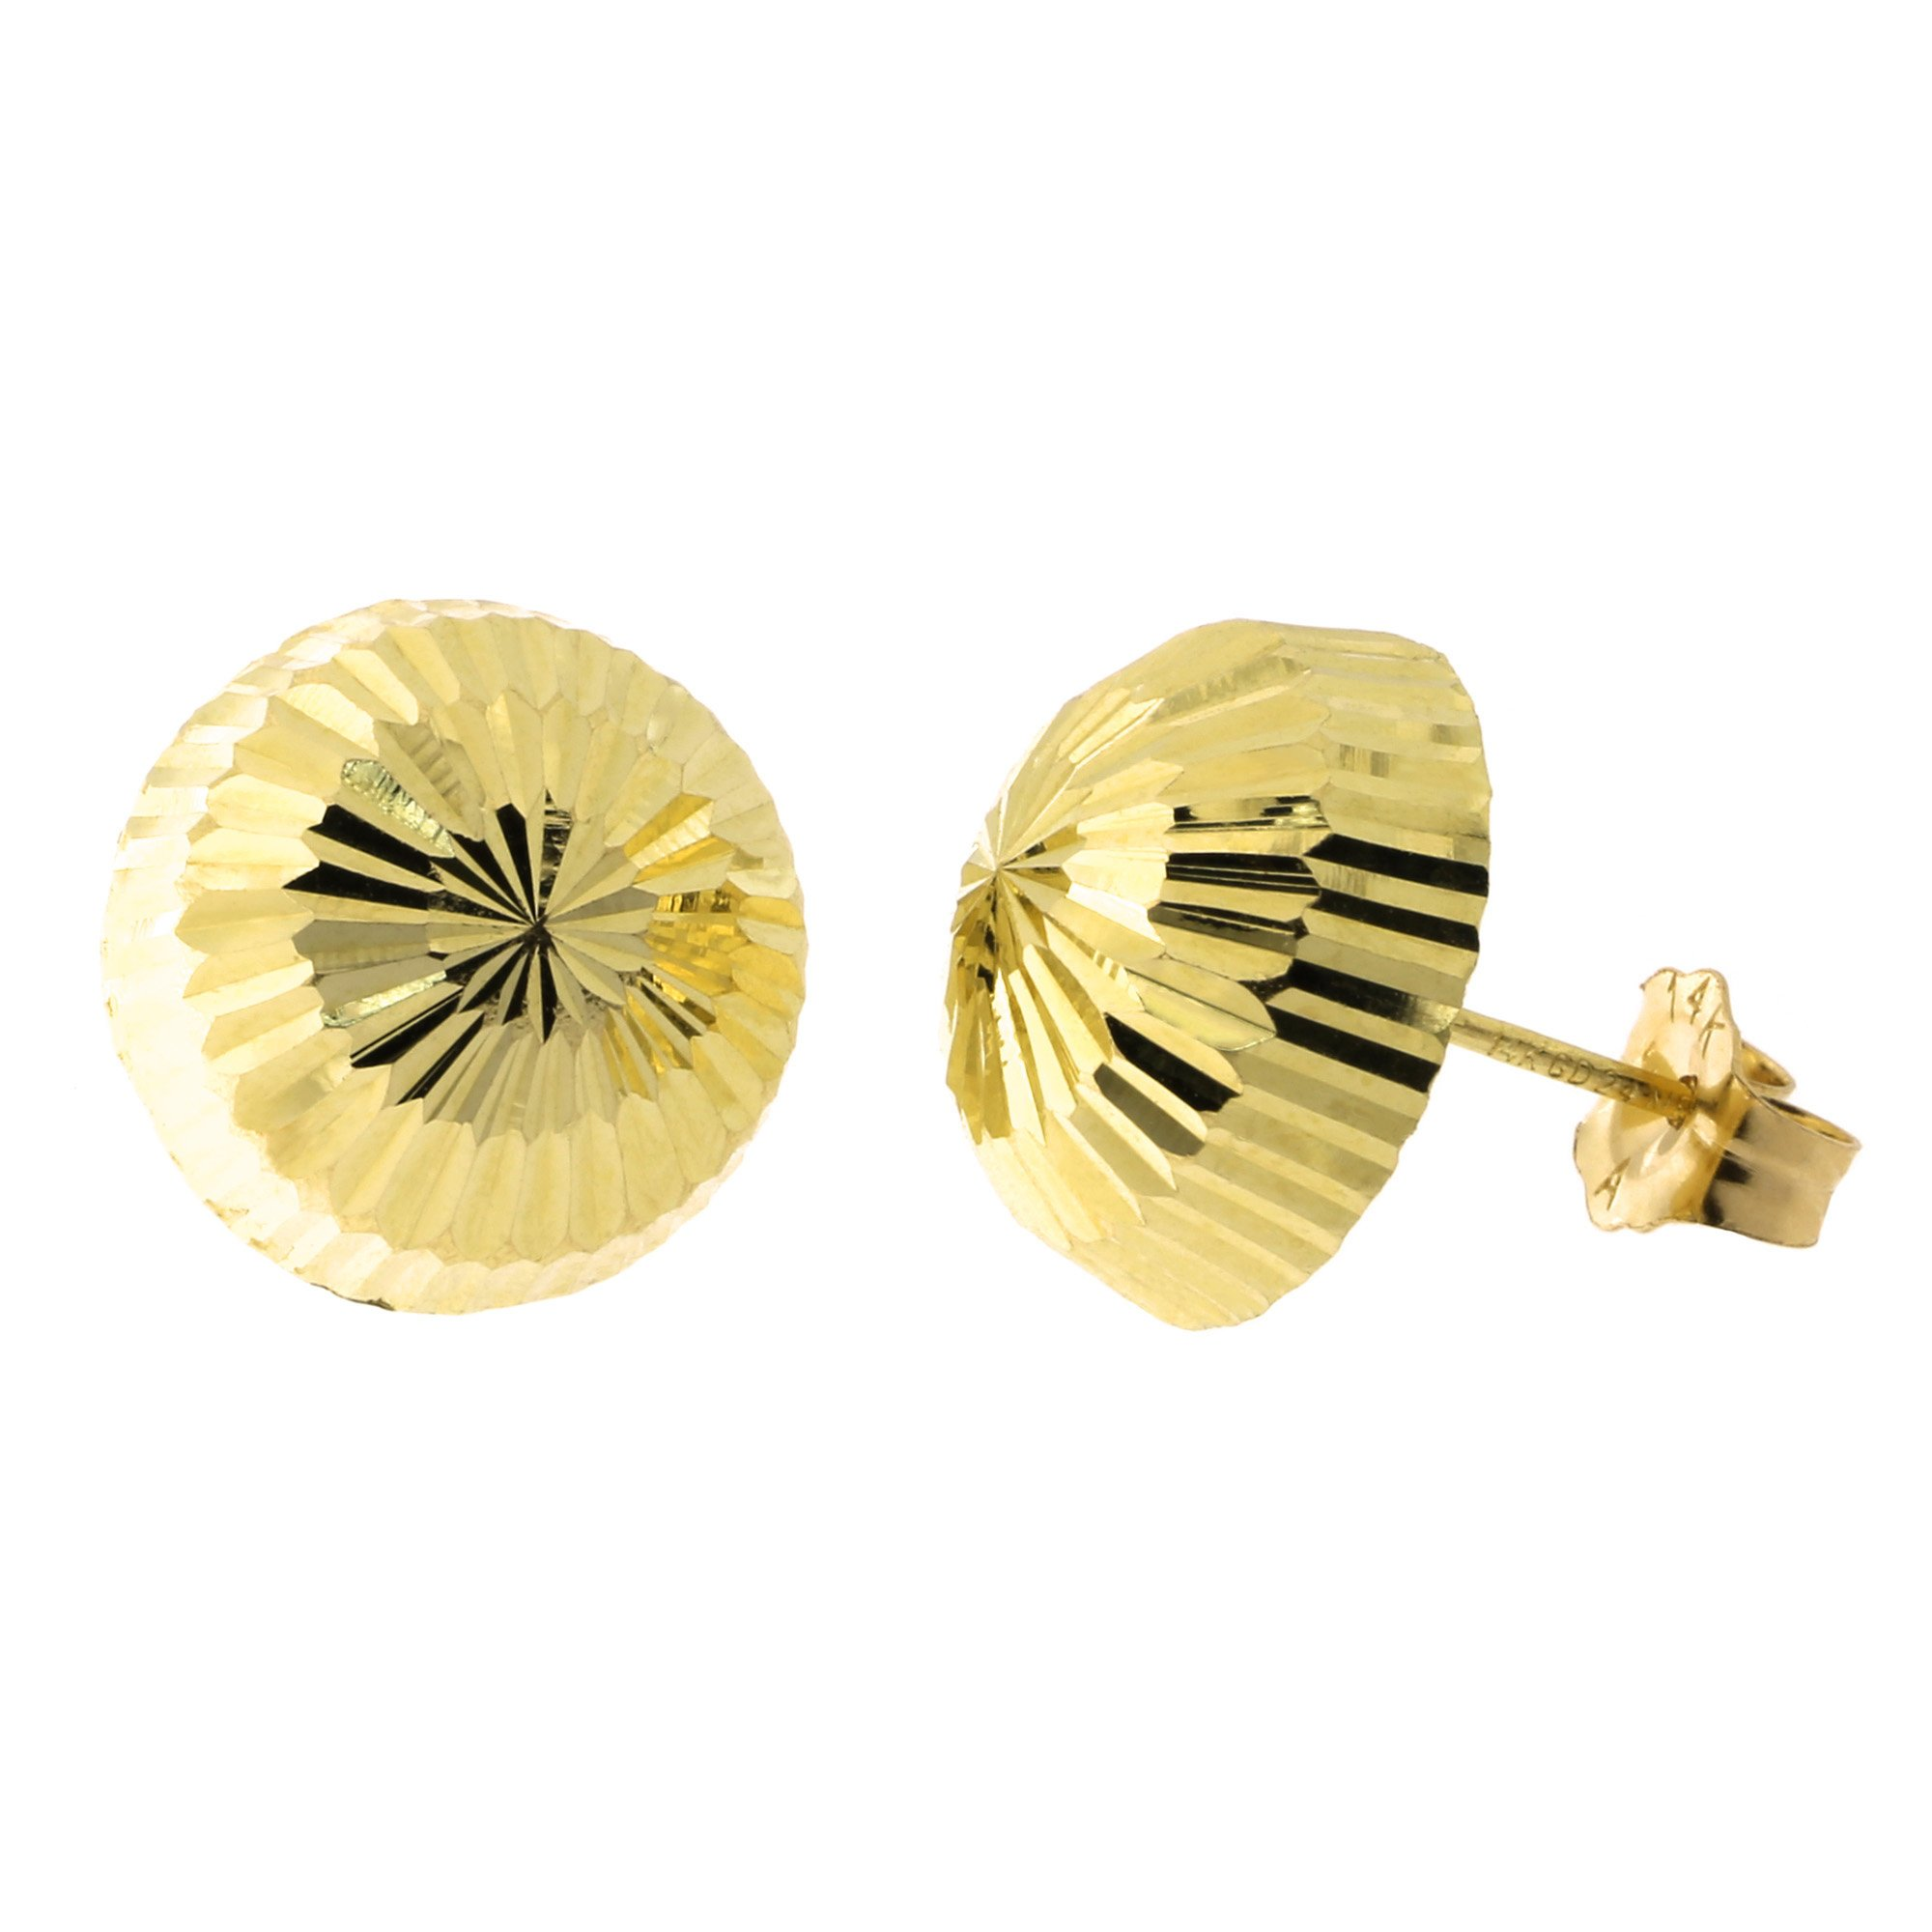 14k Yellow Gold Diamond Cut Half Ball Stud Earrings, 10mm